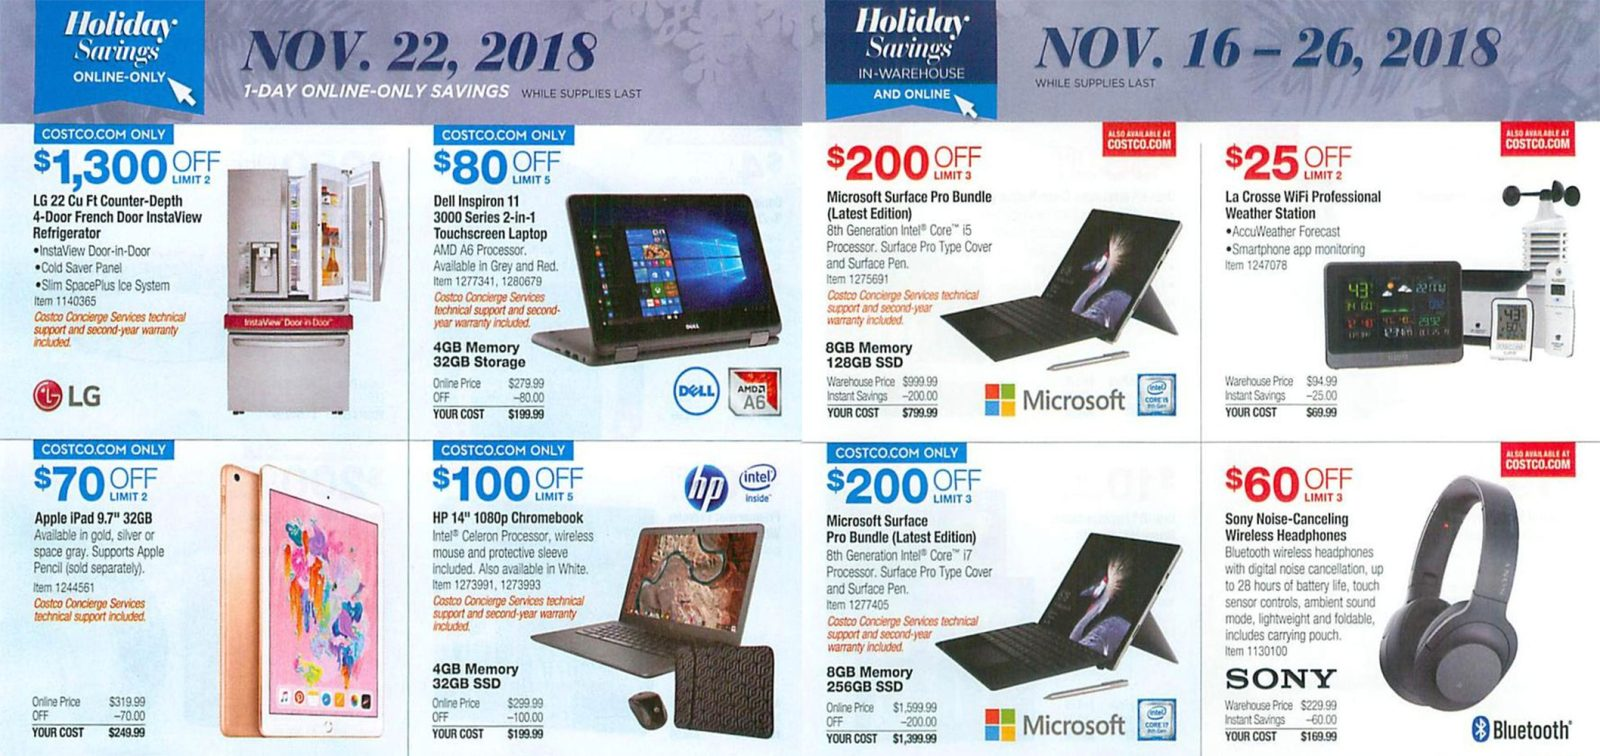 949b20b9109 Costco Black Friday ad leak reveals first look at this year s hottest deals